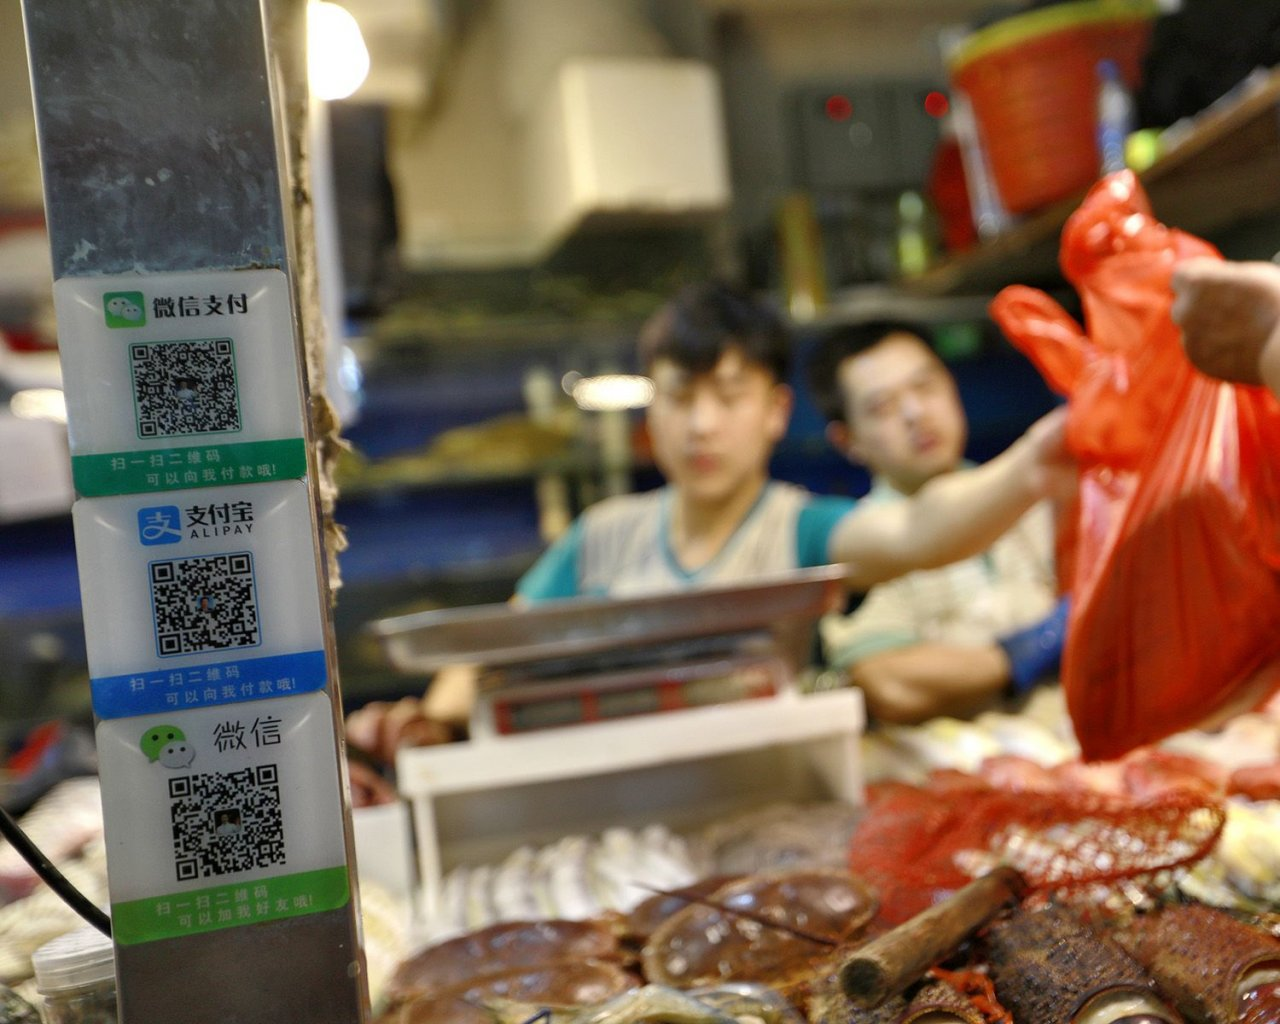 QR codes for mobile payments via Wechat and Alipay are seen on a seafood stall in a market in Beijing, China, 09 August 2017. Image Source: nationmultimedia.com